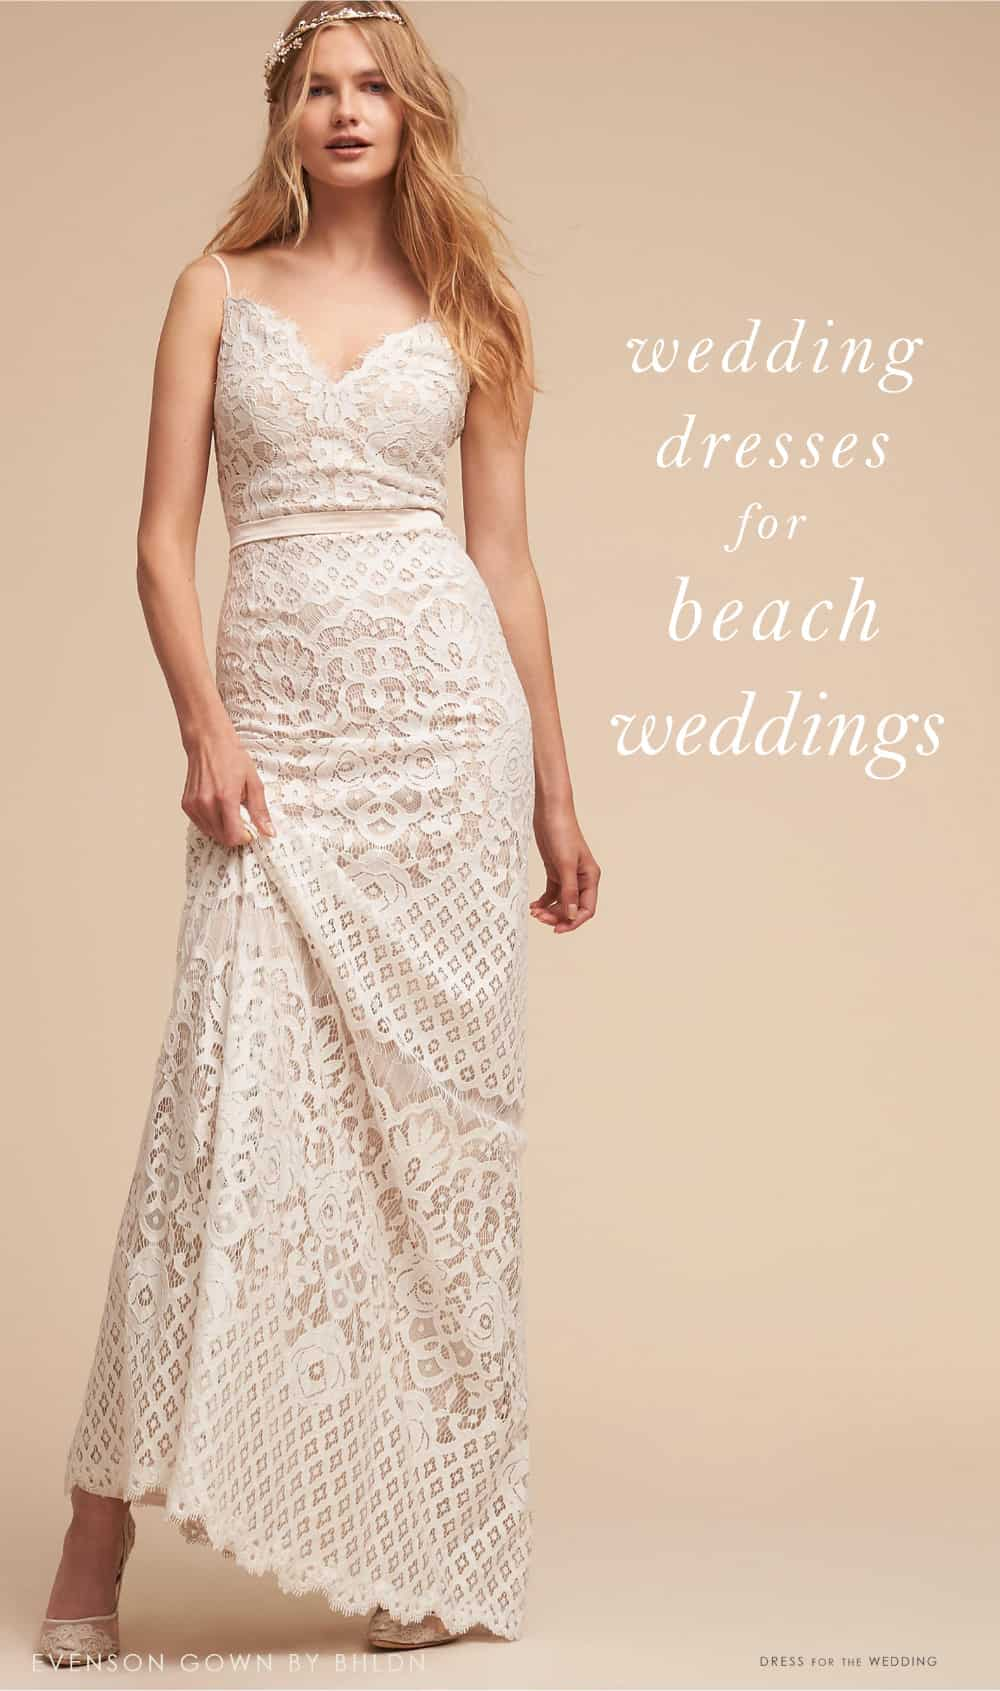 dress for beach wedding collection casual wedding dresses pictures best 3687